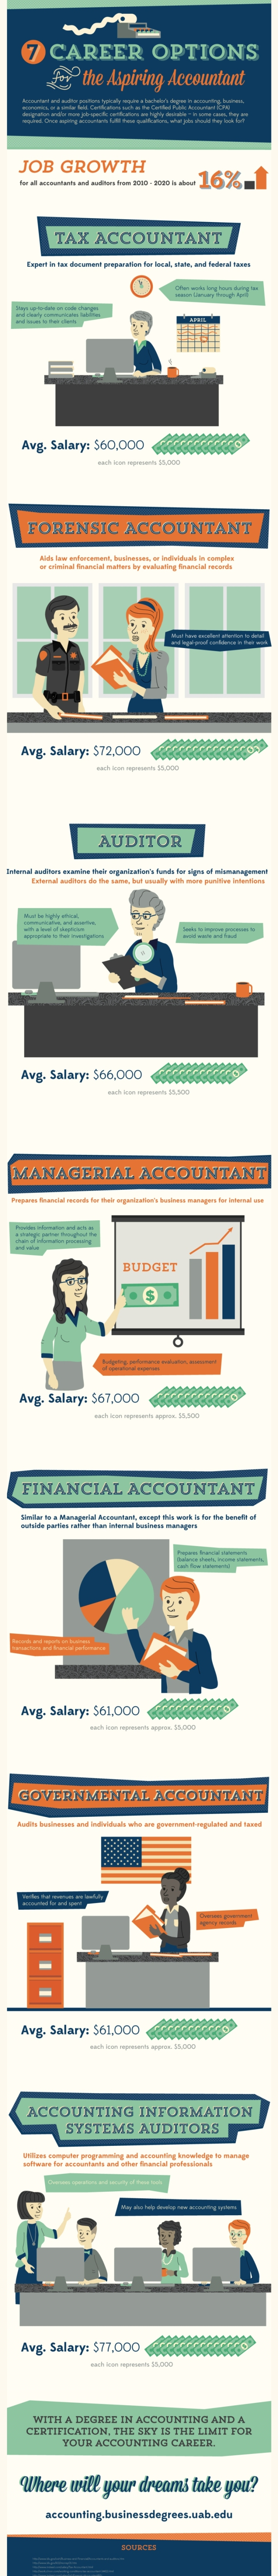 Useful data for aspiring Accountants